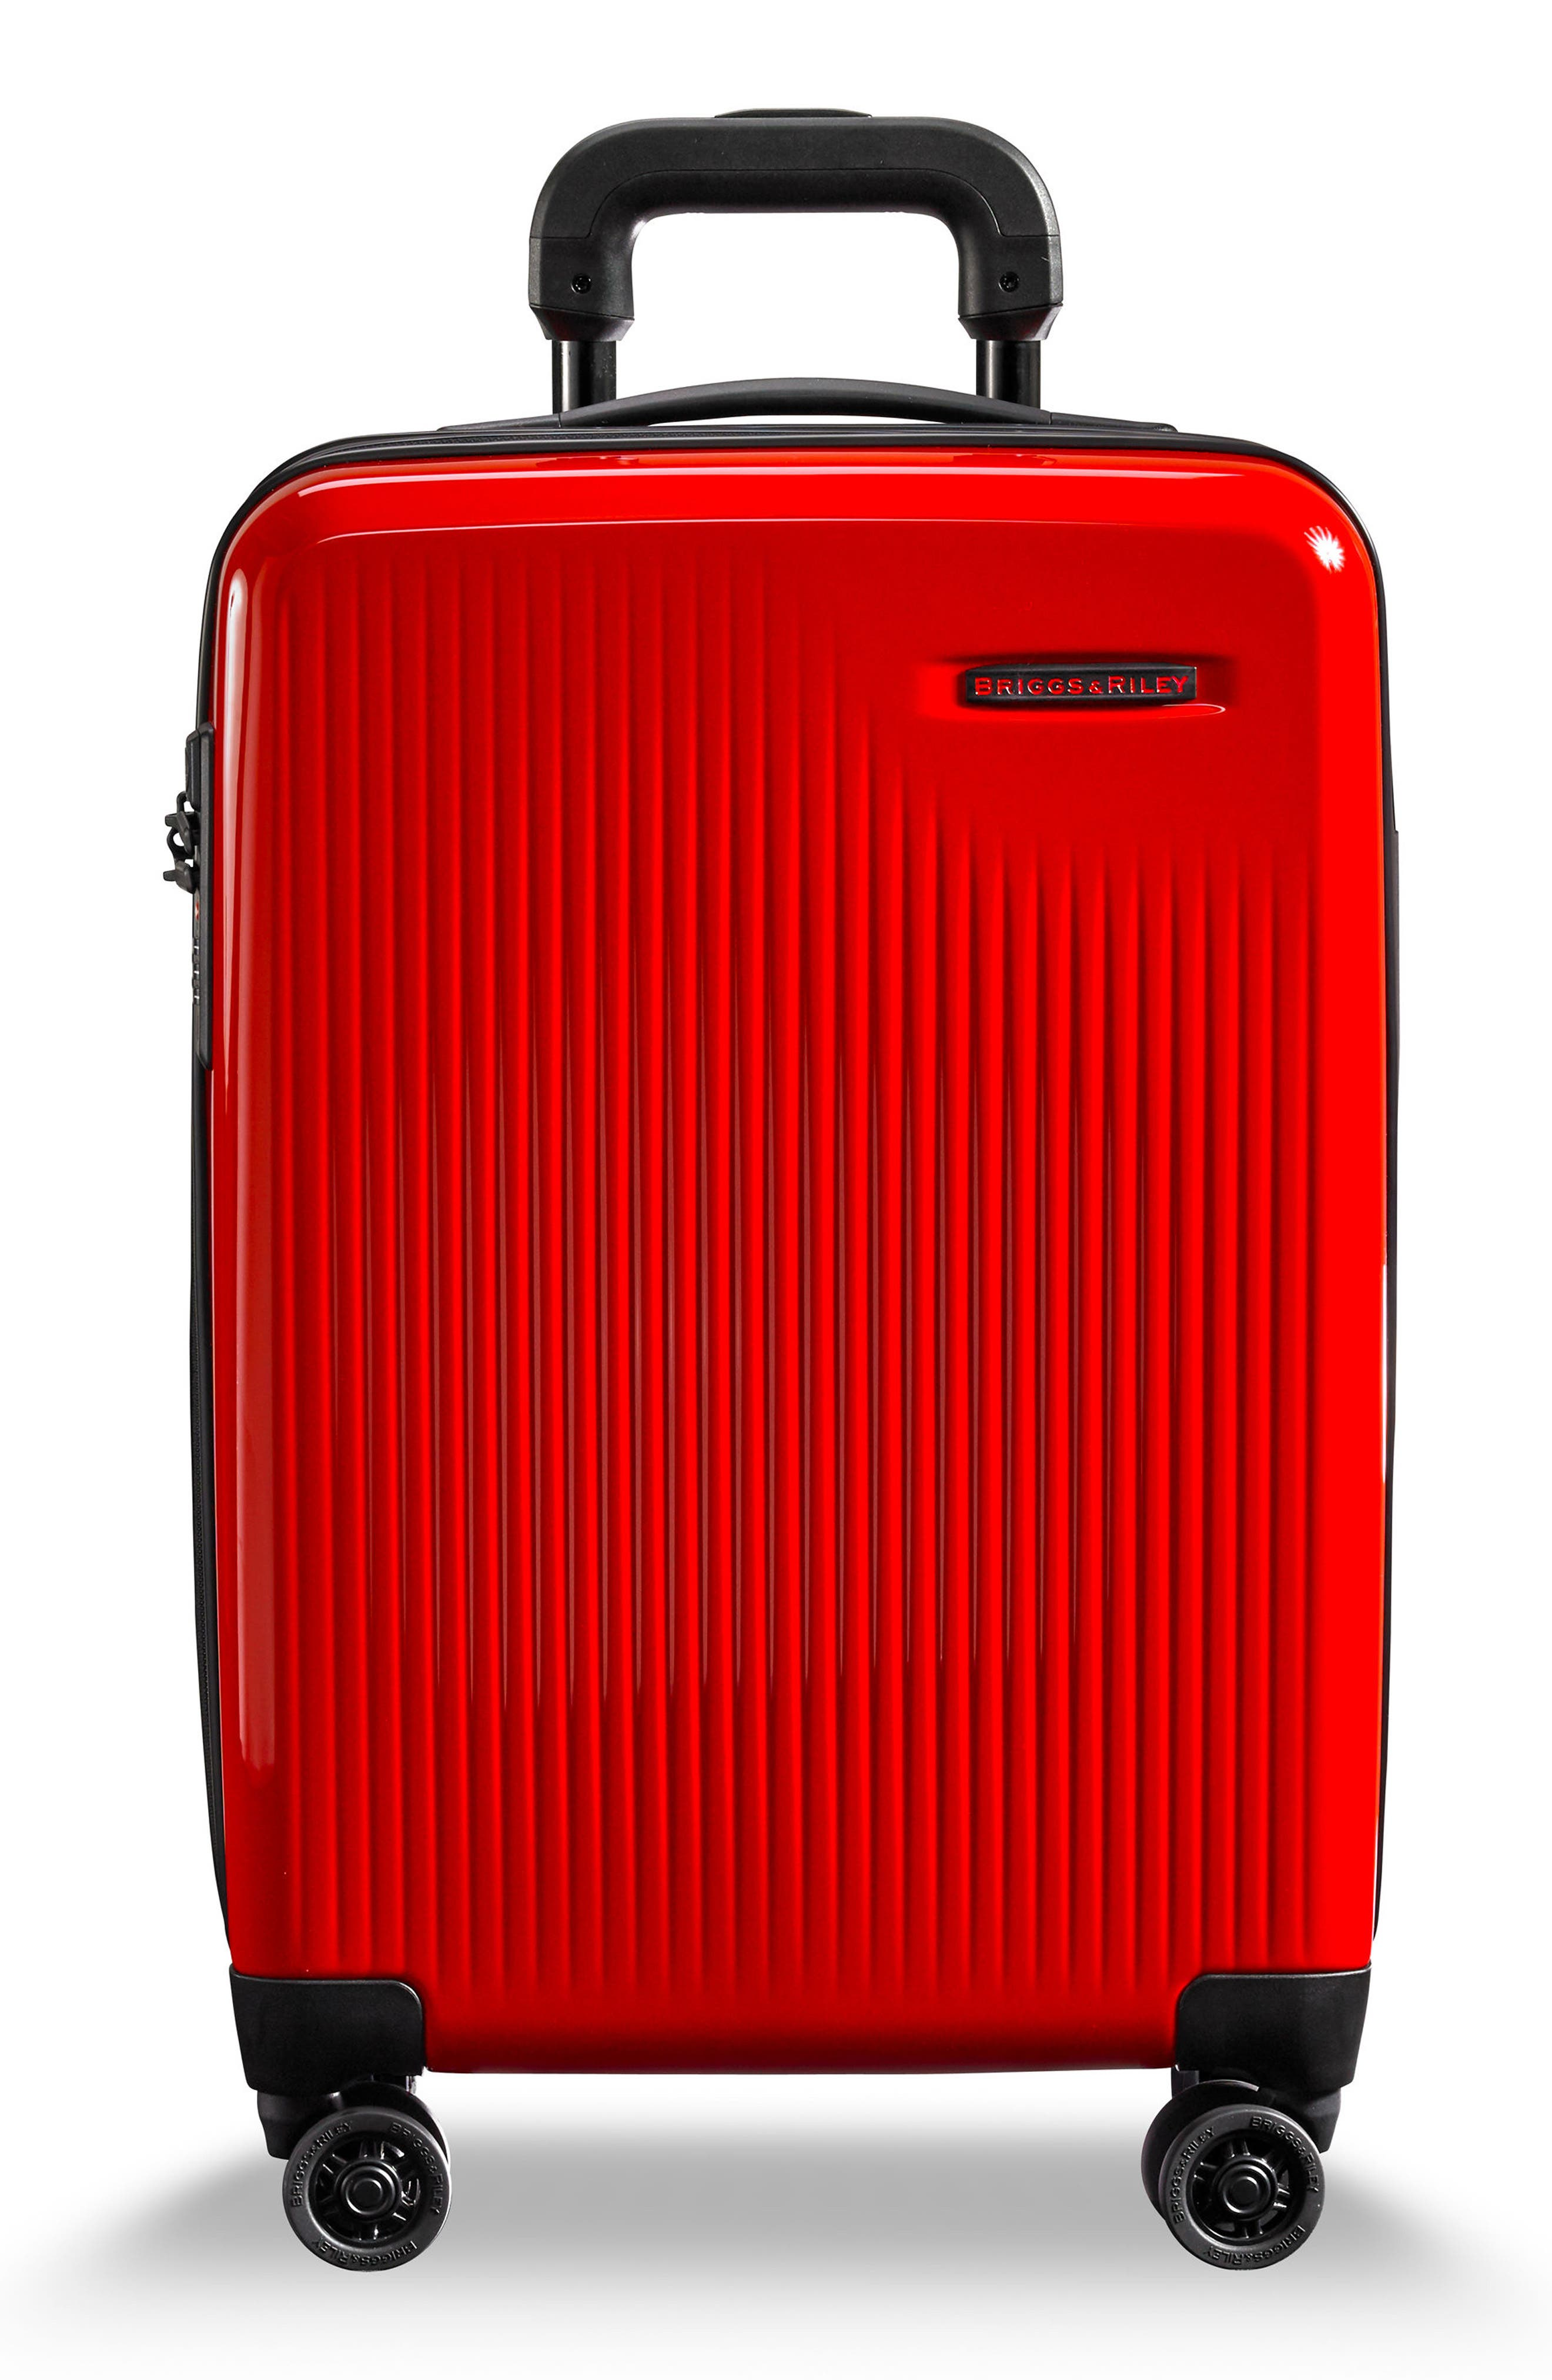 Briggs & Riley Sympatico 21-Inch Expandable Wheeled Carry-On